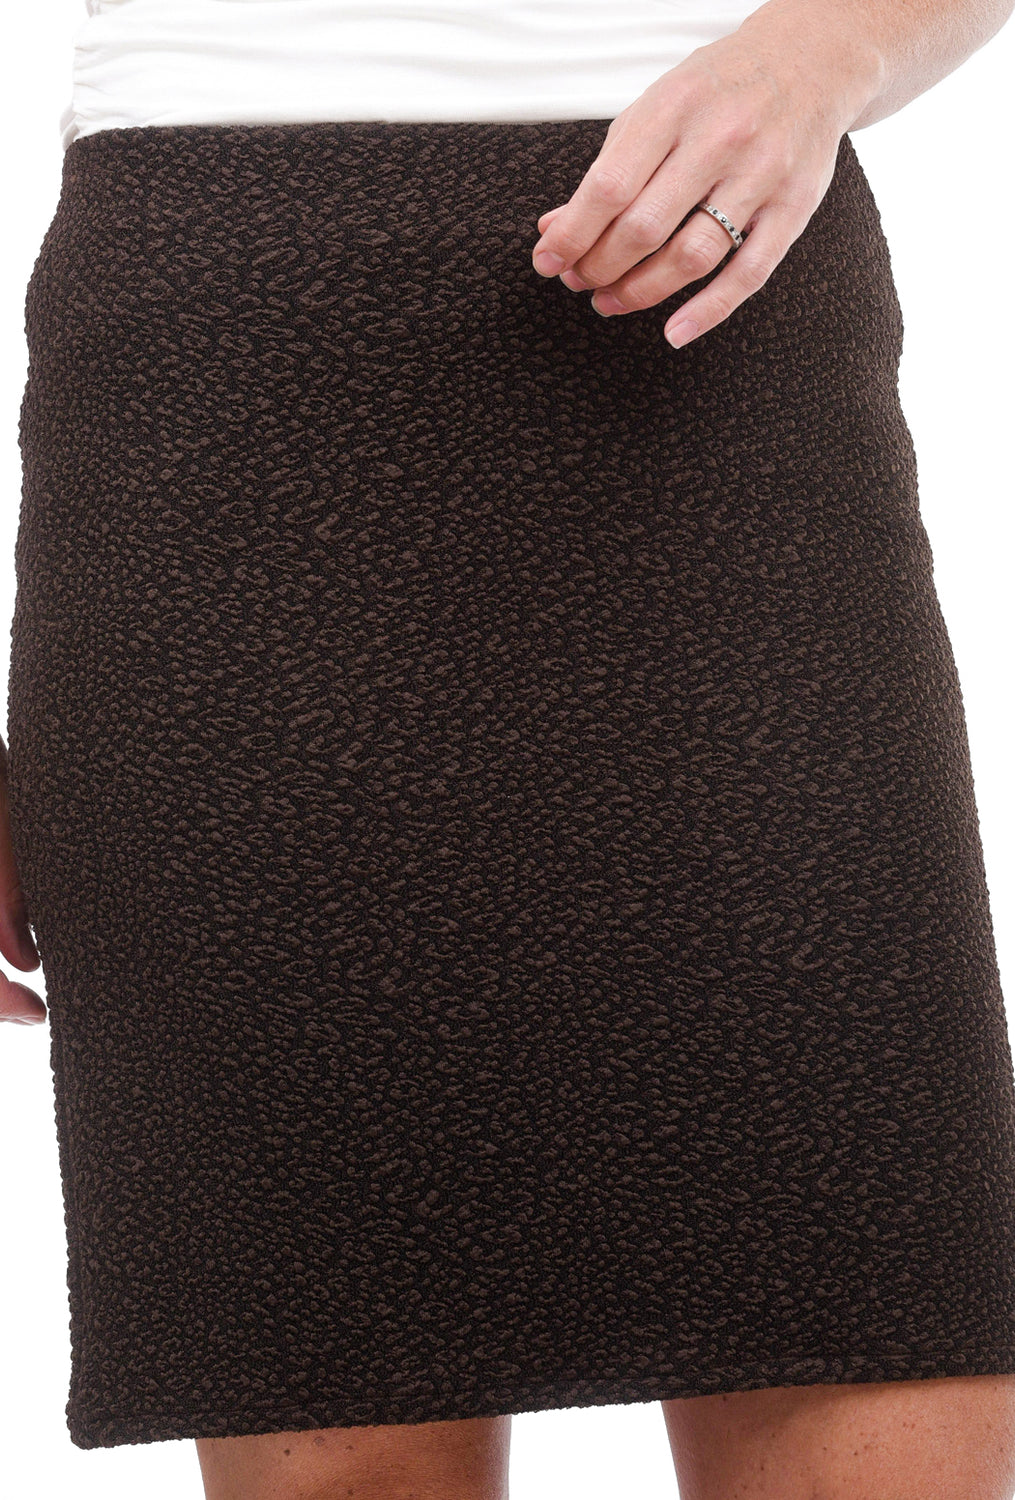 Eva Varro Pebbled Slim Skirt, Mink Brown